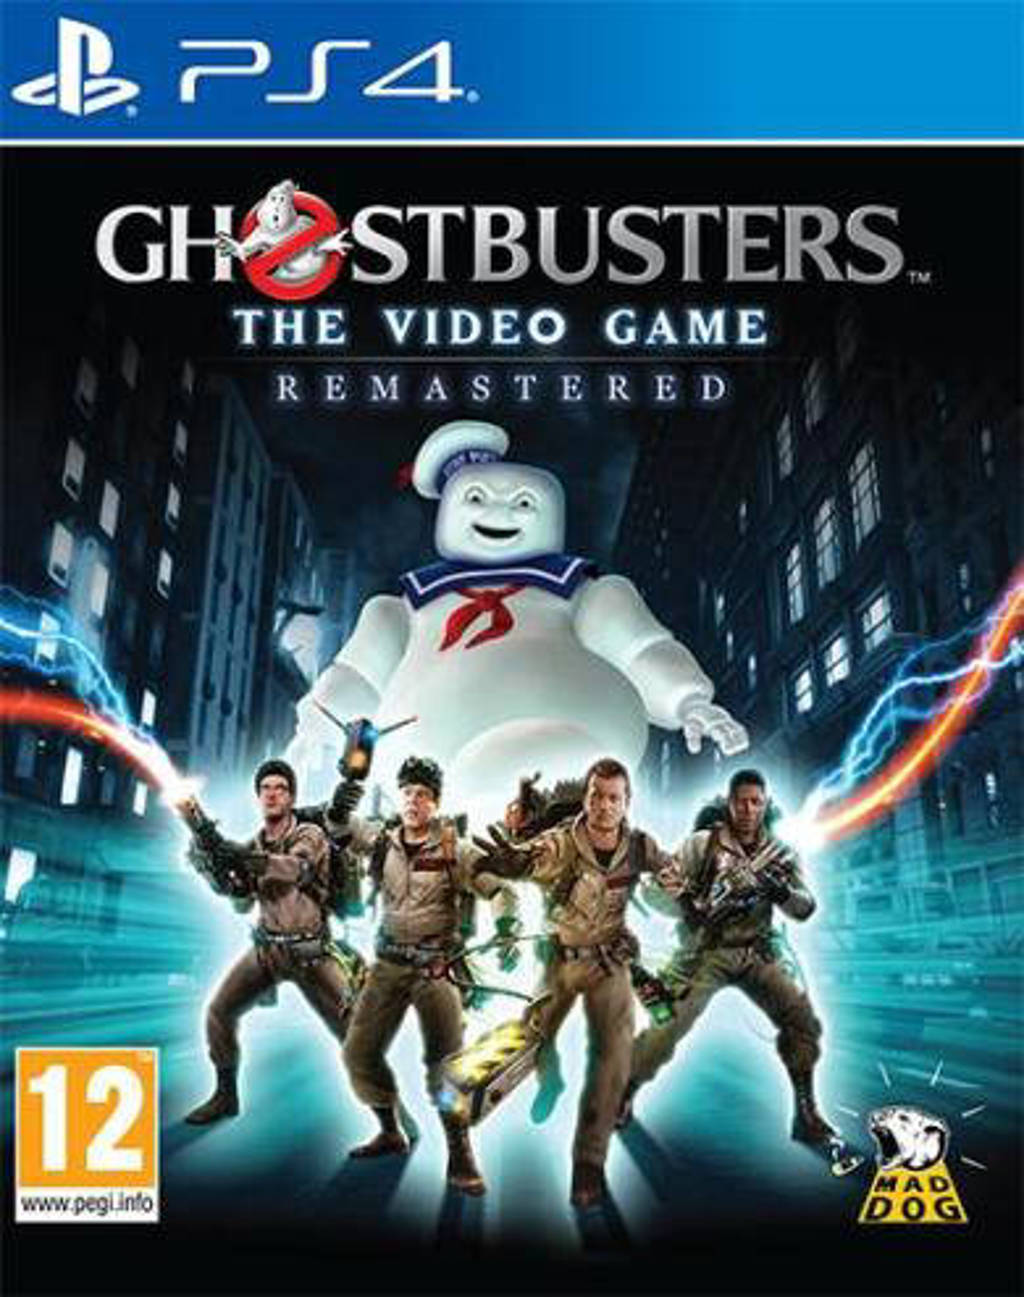 Ghostbusters - Videogame Remastered (PlayStation 4)